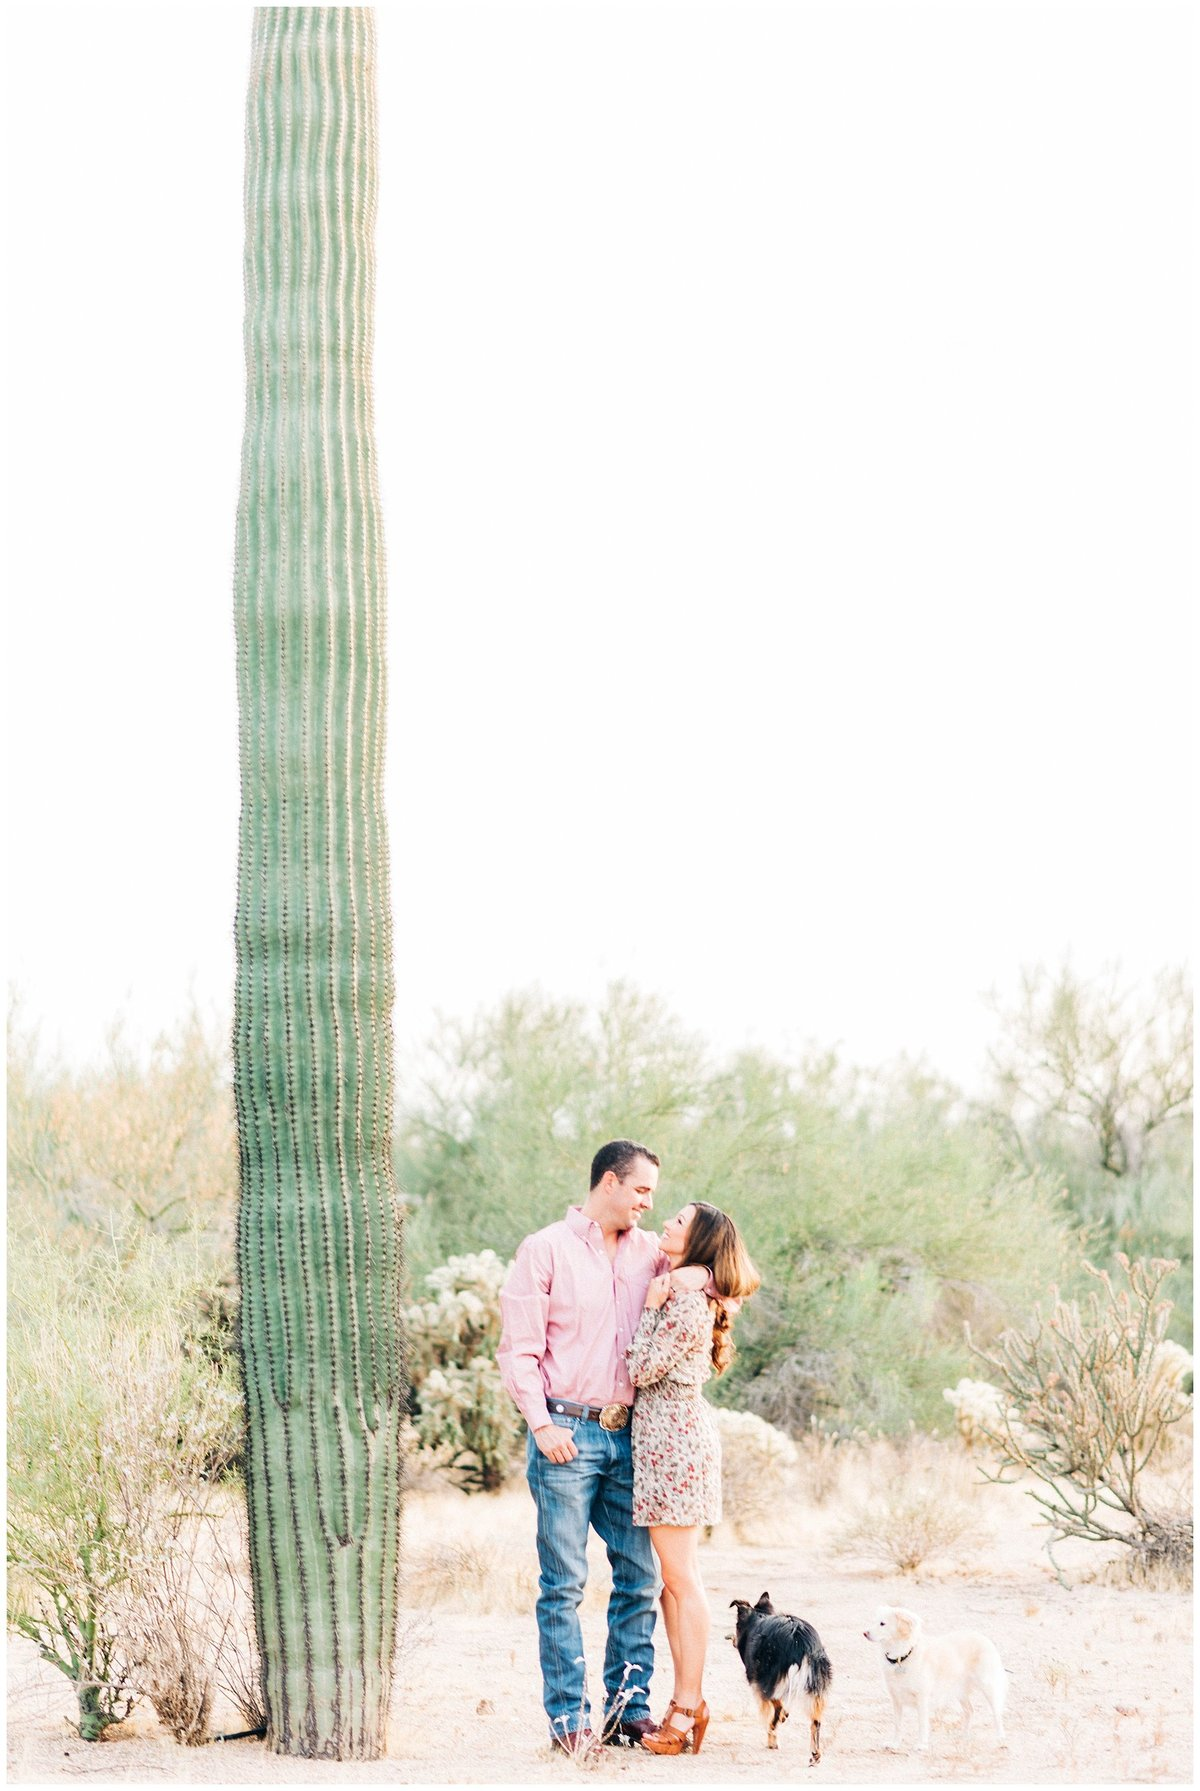 Guss's-Couple-Session-Cave-Creek-Arizona-Ashley-Flug-Photography16-2